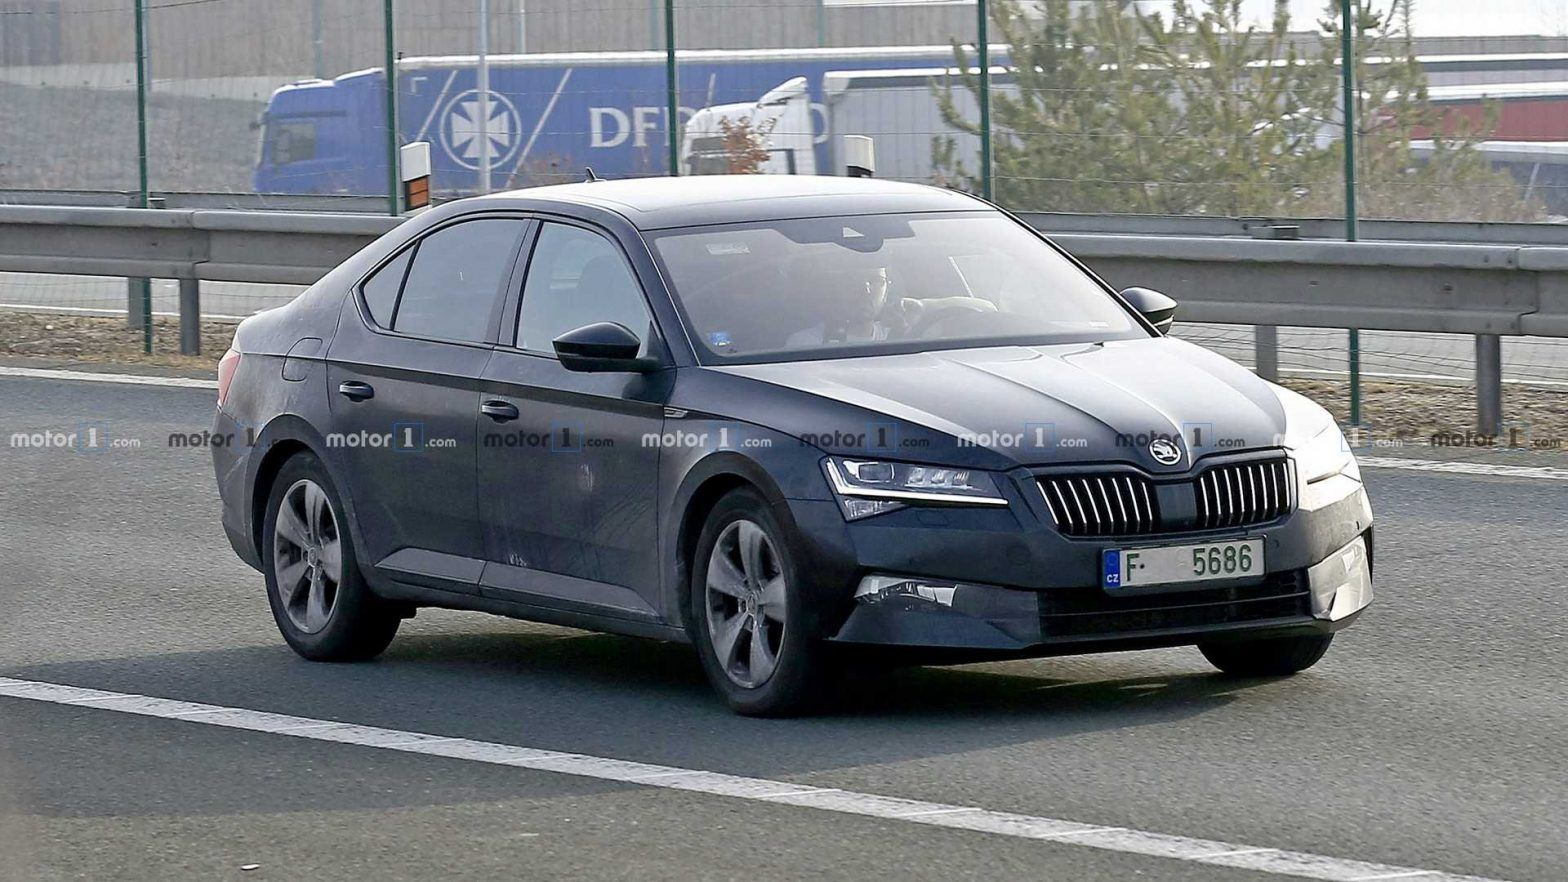 2019 The Spy Shots Skoda Superb Review Cars Cars New Lexus